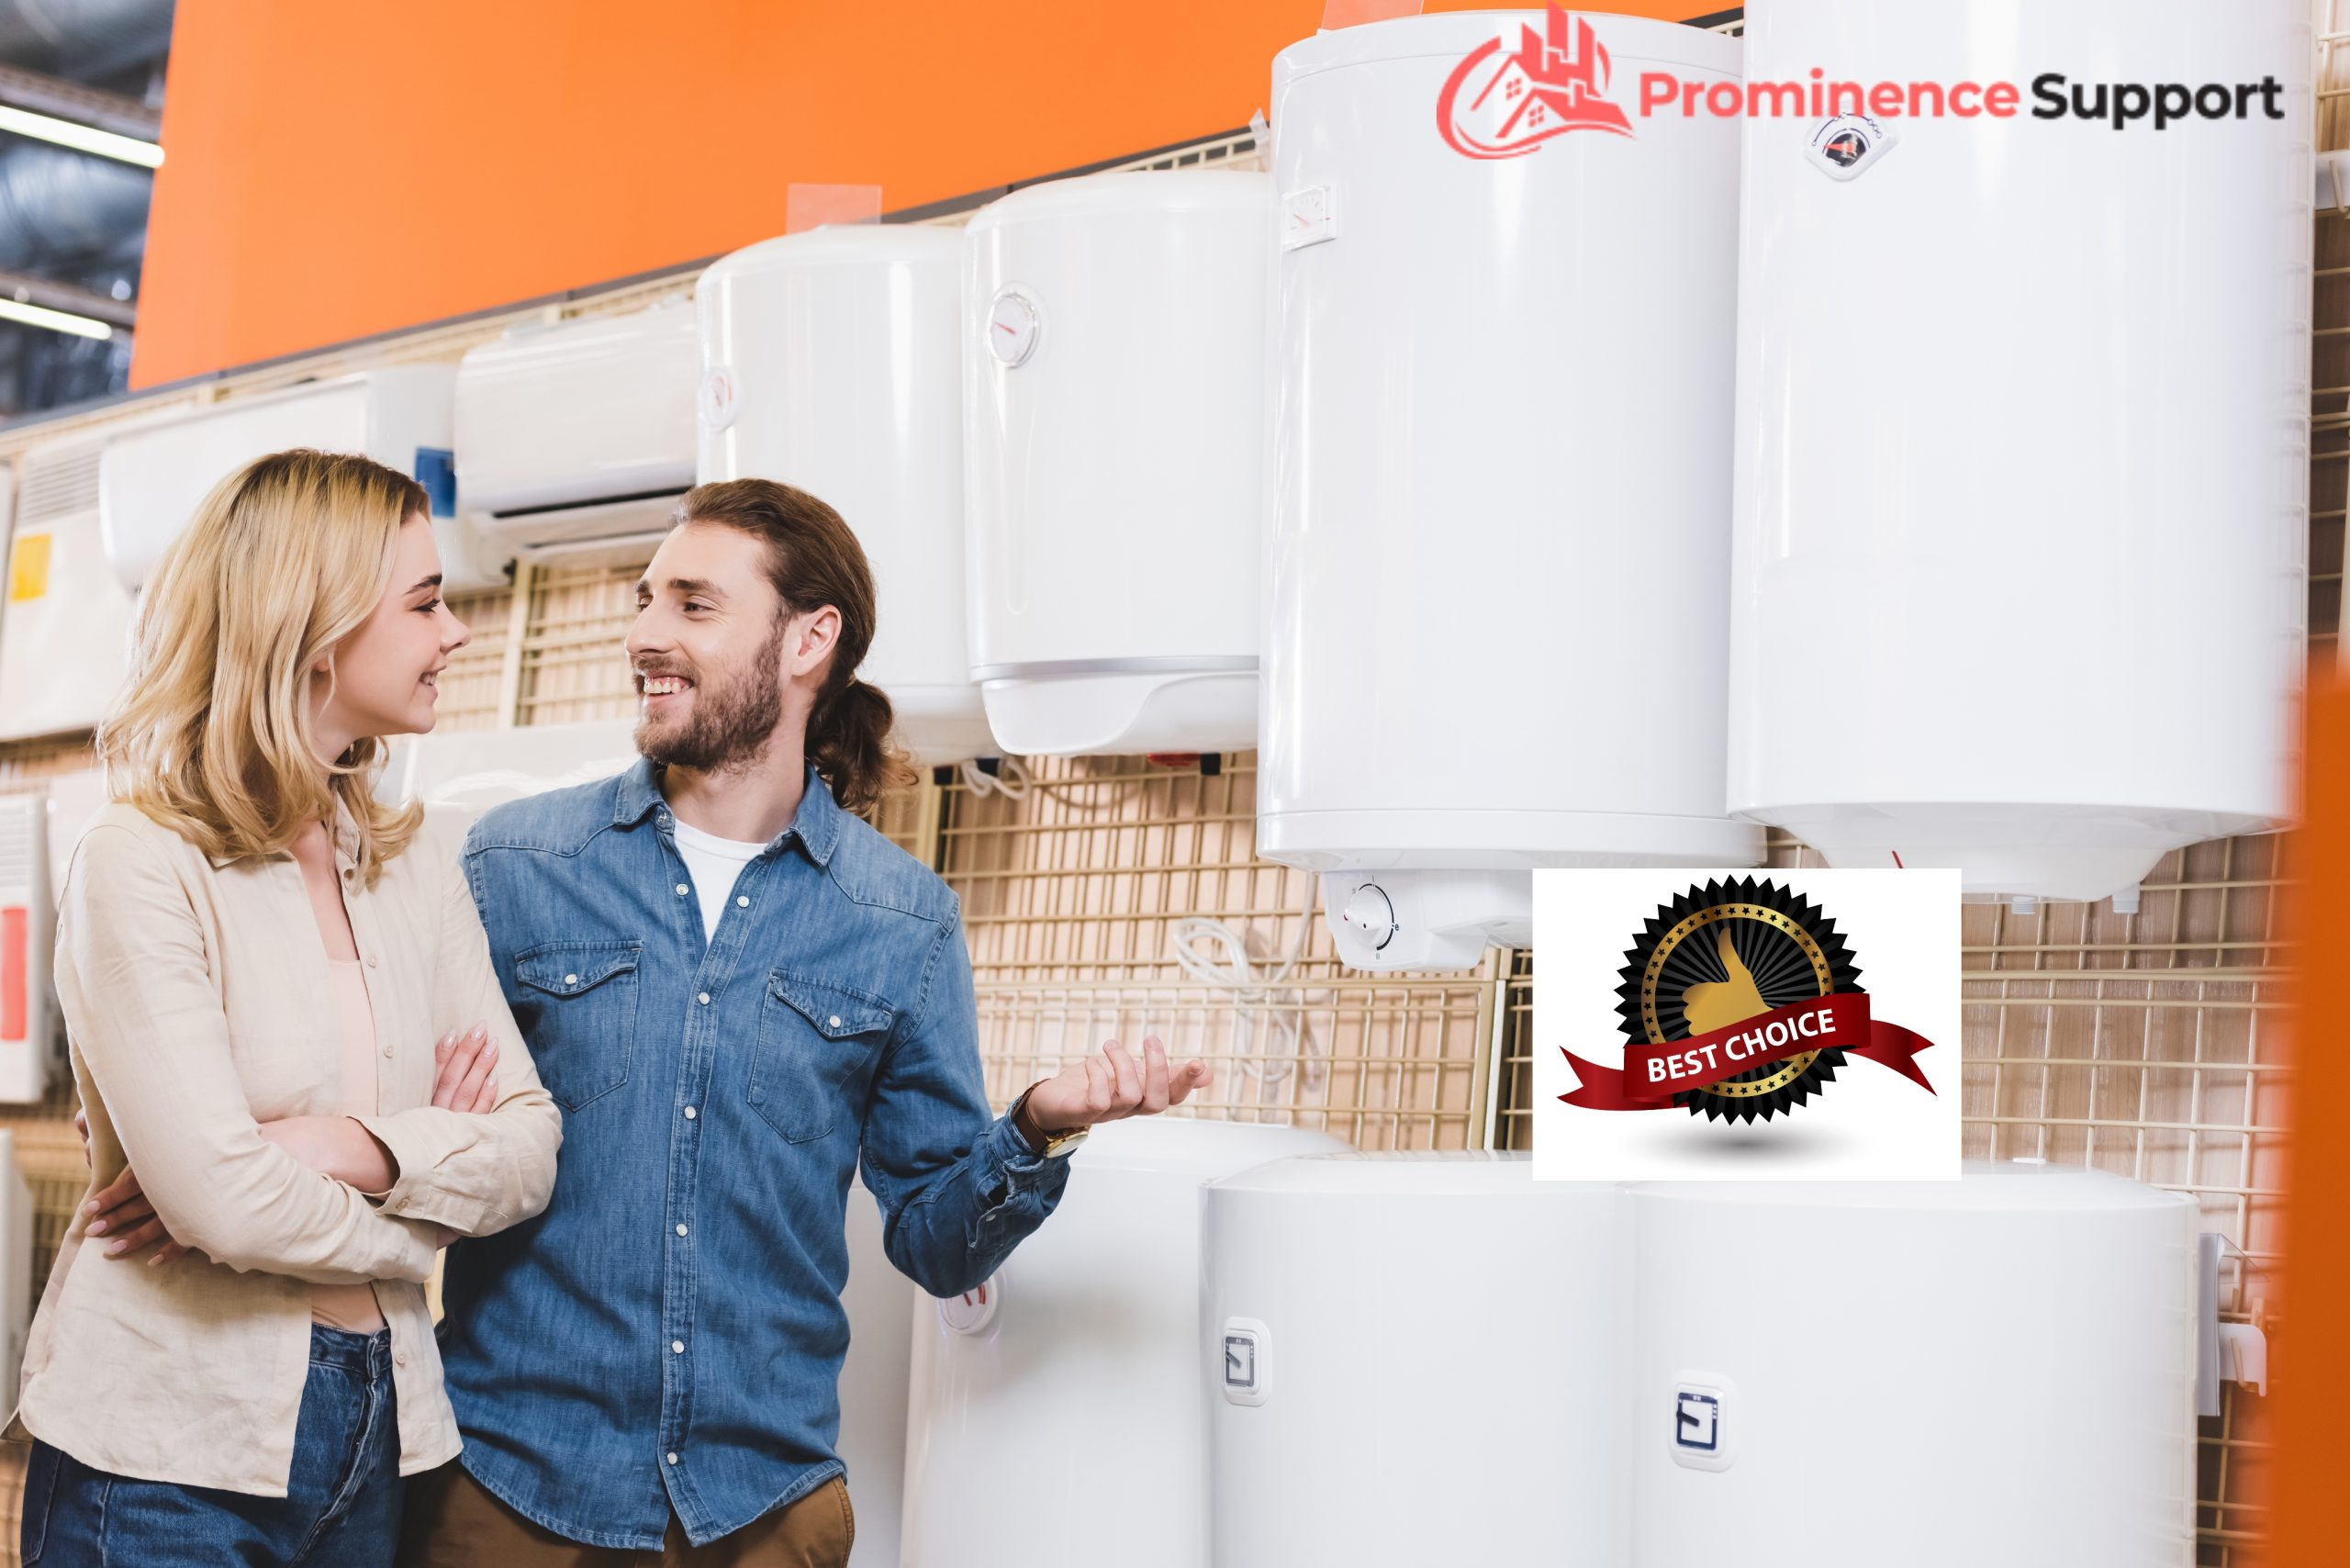 Who are some of the best boiler providers